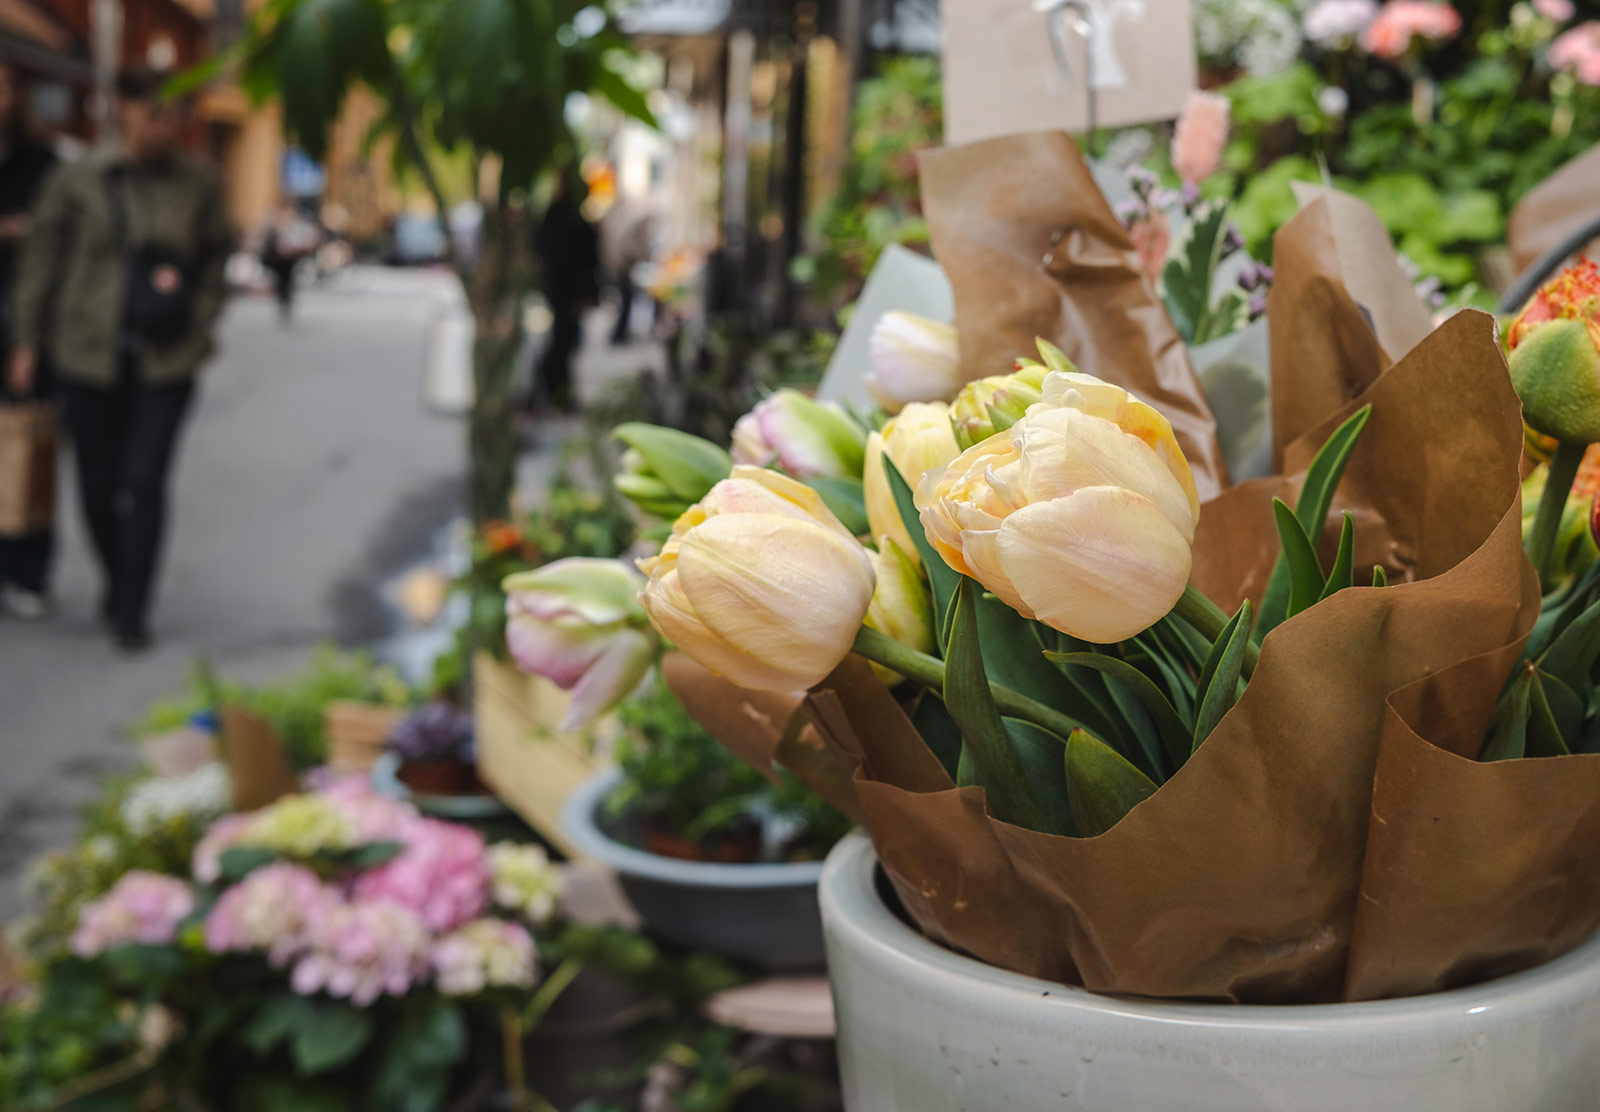 Tulips wrapped in paper